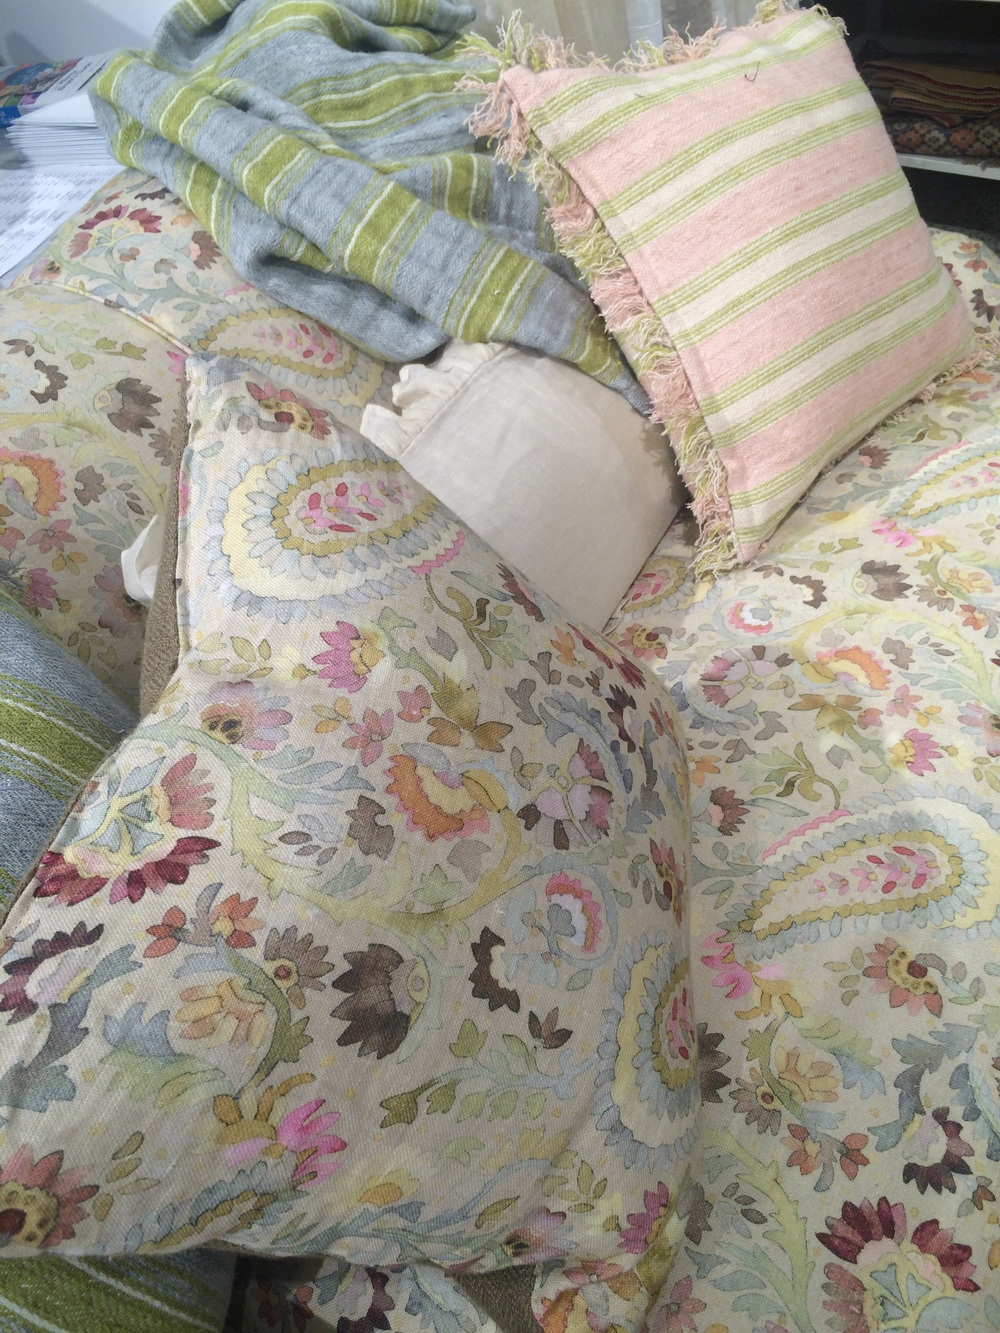 These pretty throws and pillows have us dreaming of Spring!